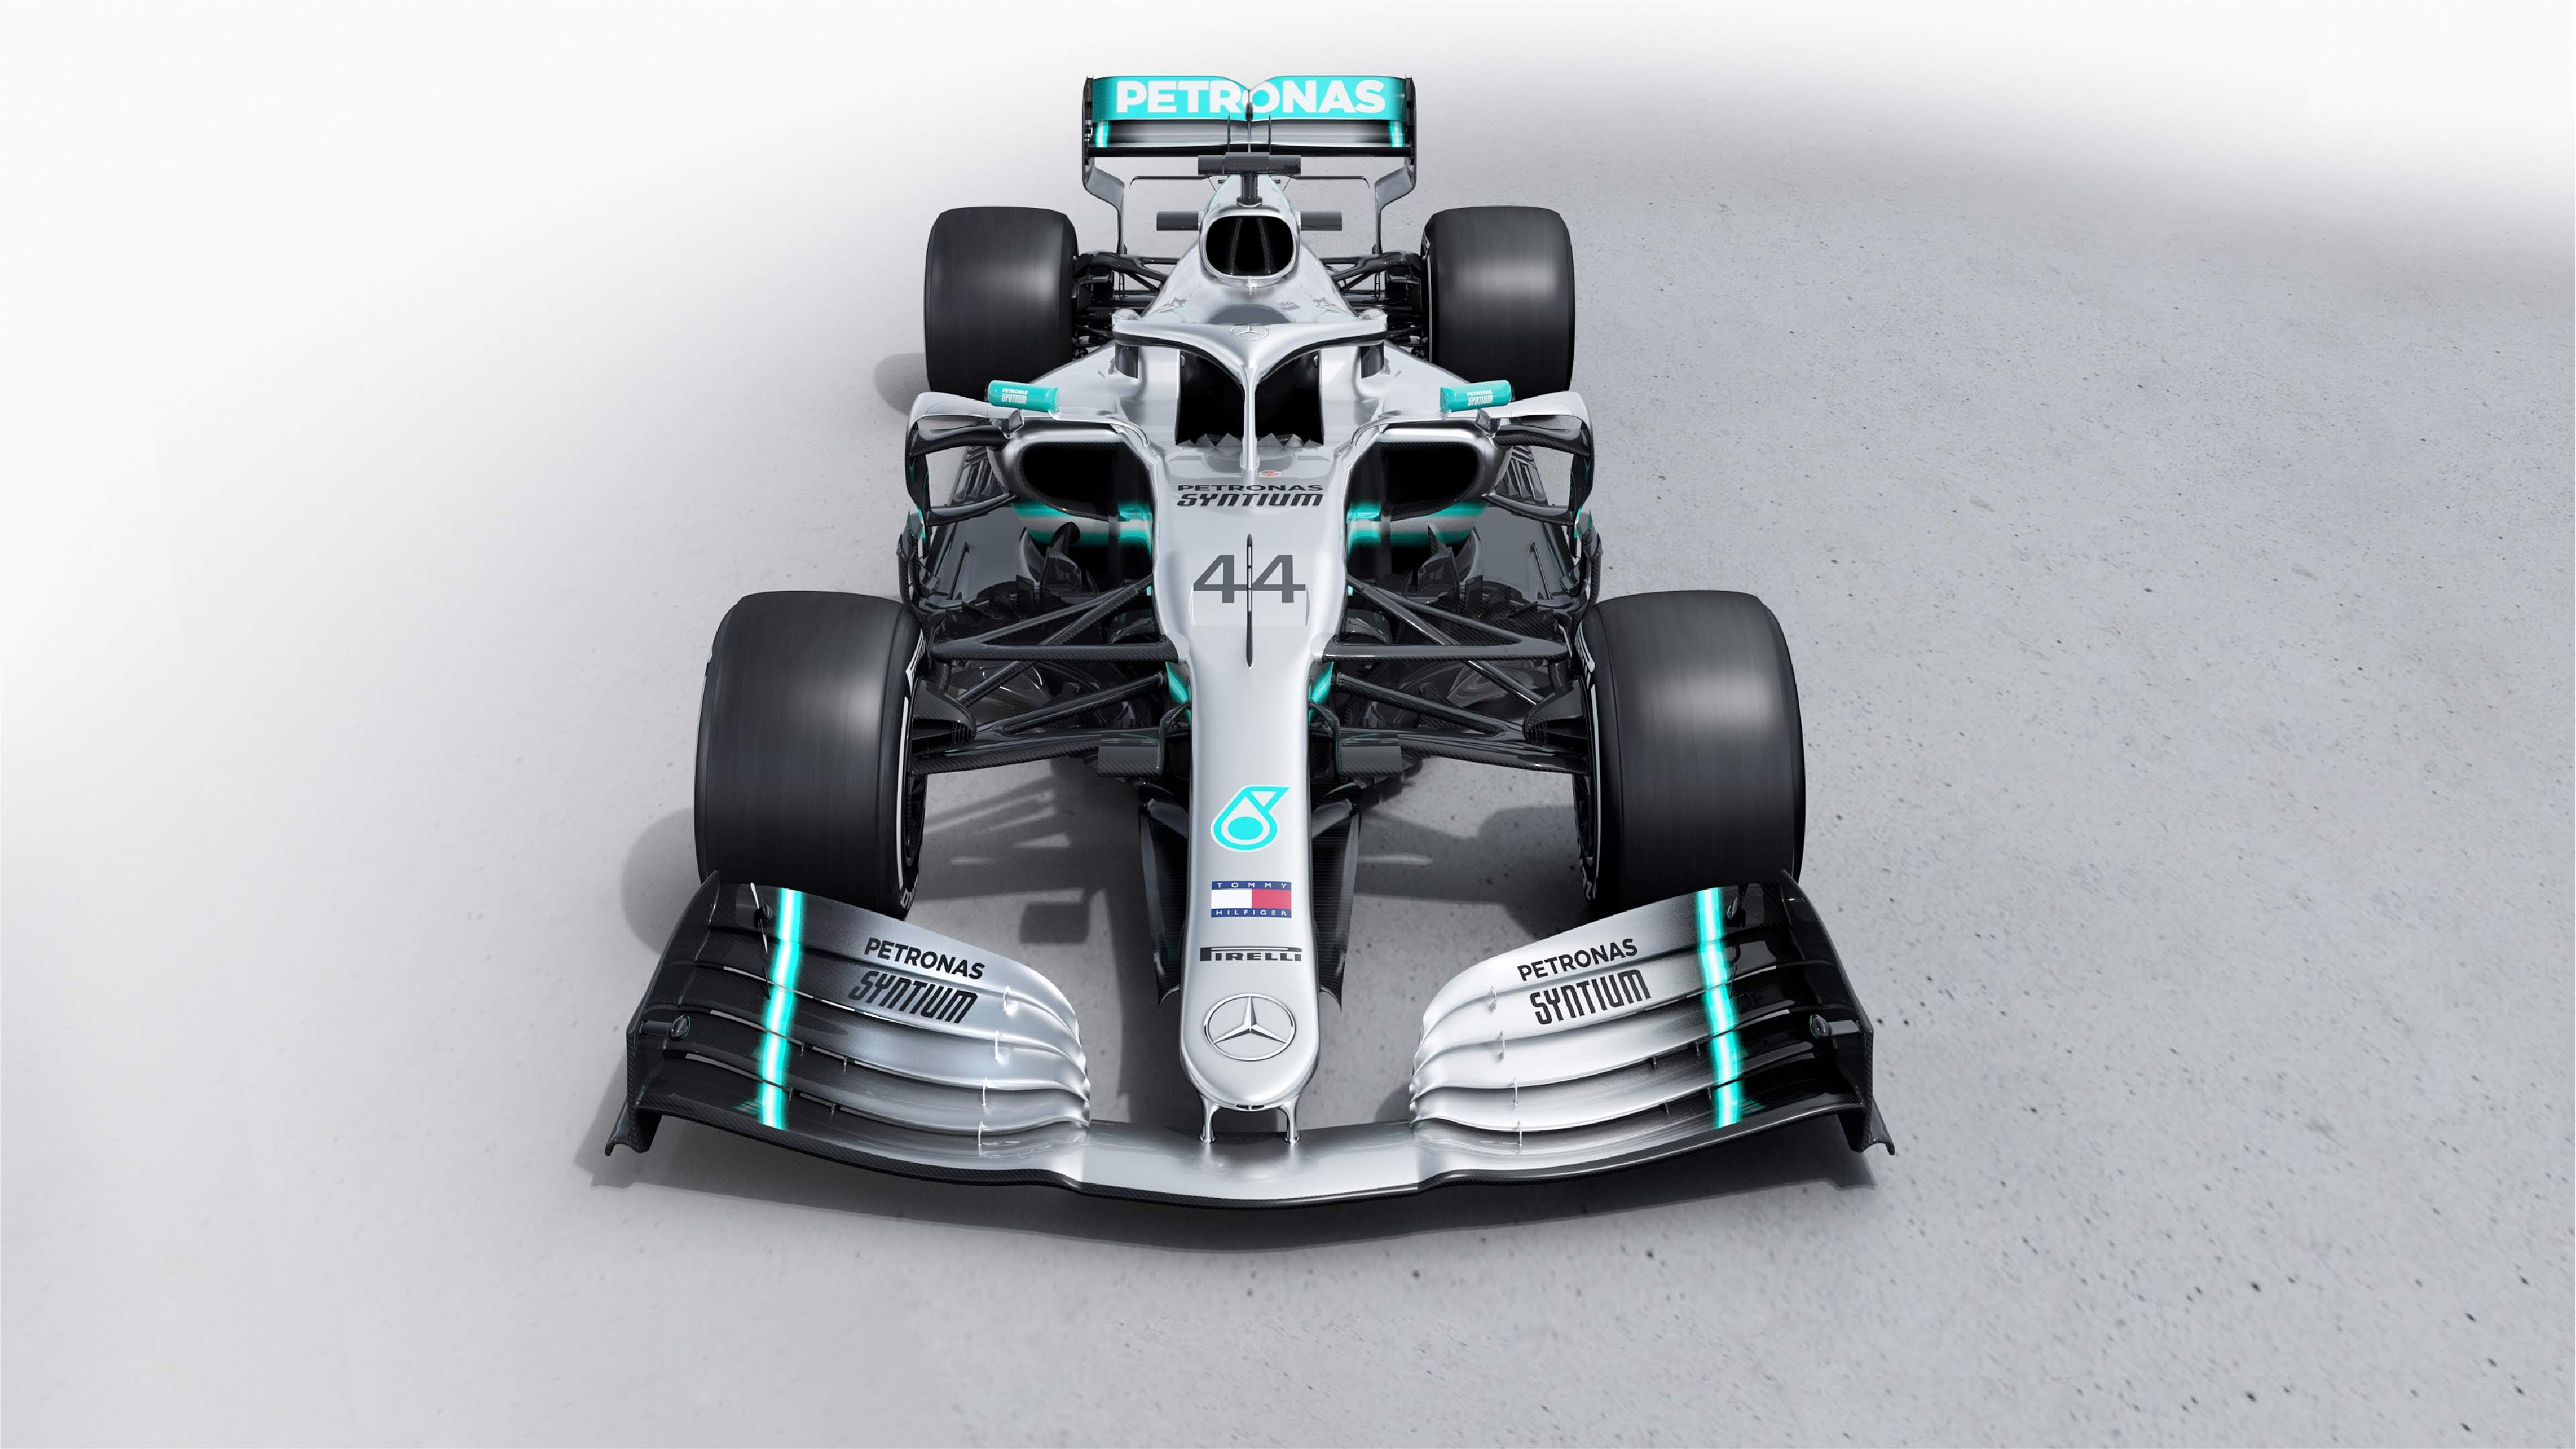 Mercedes Amg F1 2019 Ps4wallpapers Com Images, Photos, Reviews